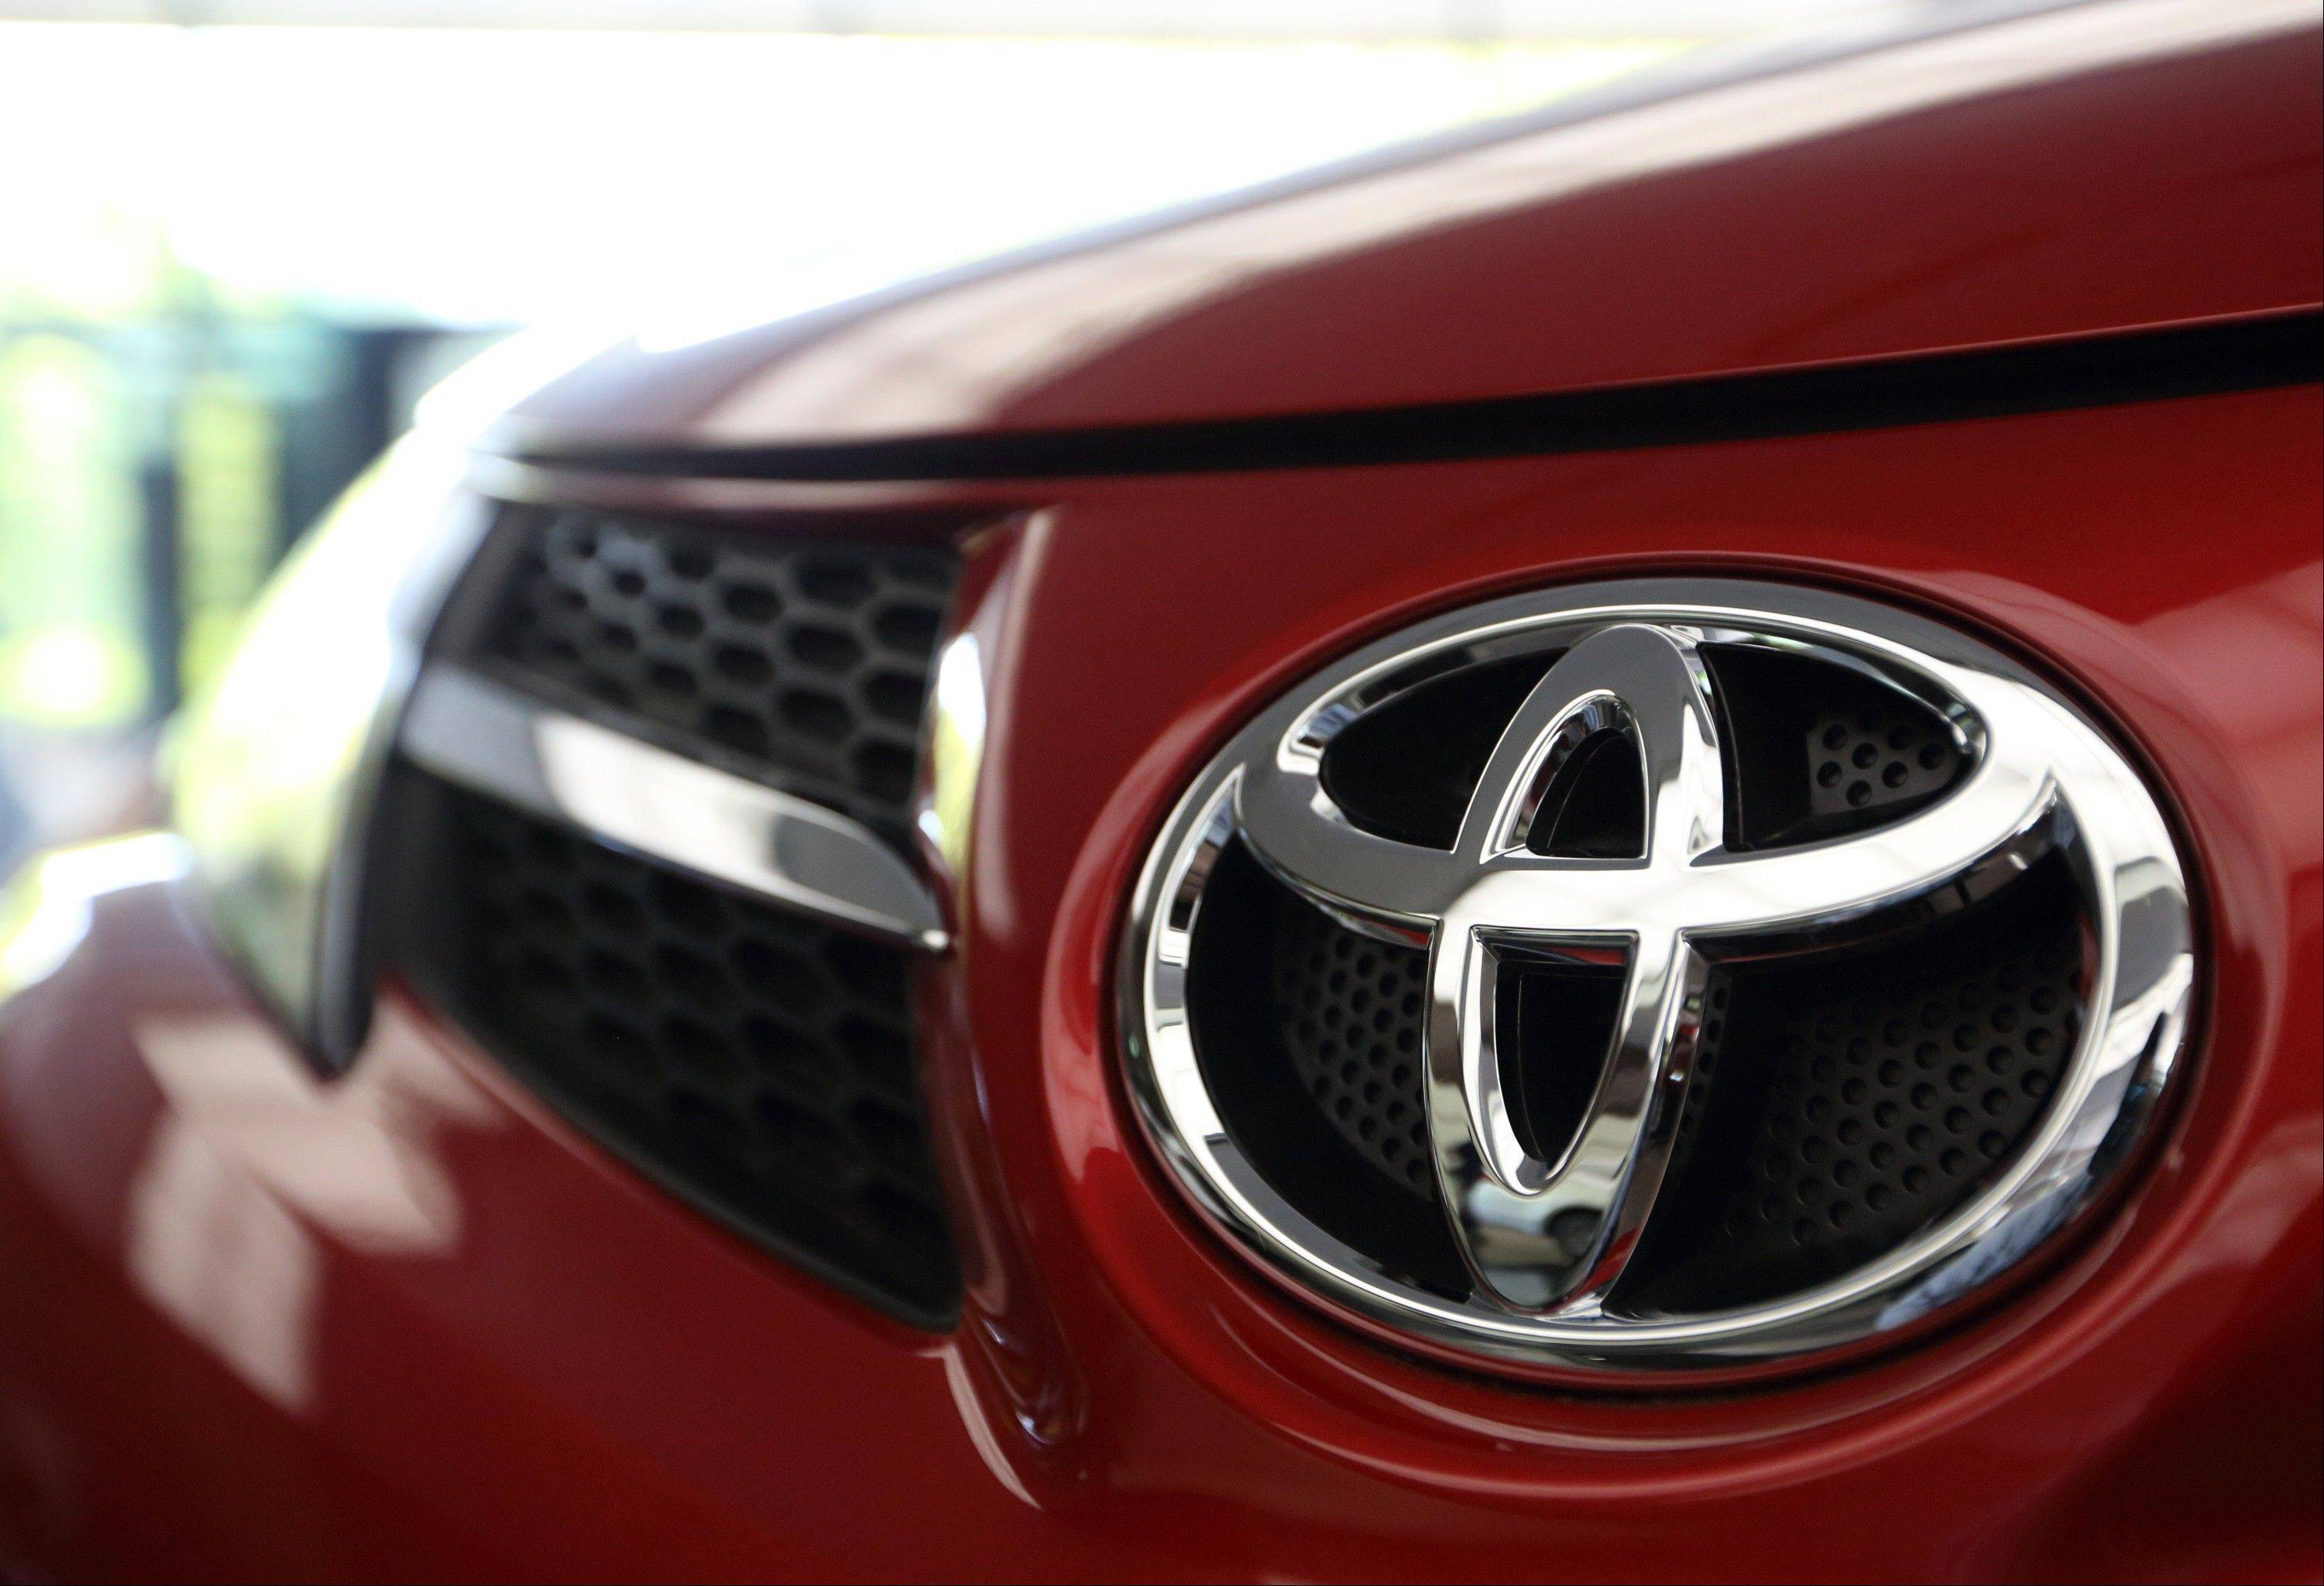 Toyota is recalling 200,000 vehicles worldwide for a hybrid-system problem and another 169,000 vehicles for an engine bolt defect. Toyota Motor Corp. spokeswoman Shino Yamada said Wednesday there were no accidents related to either recall.